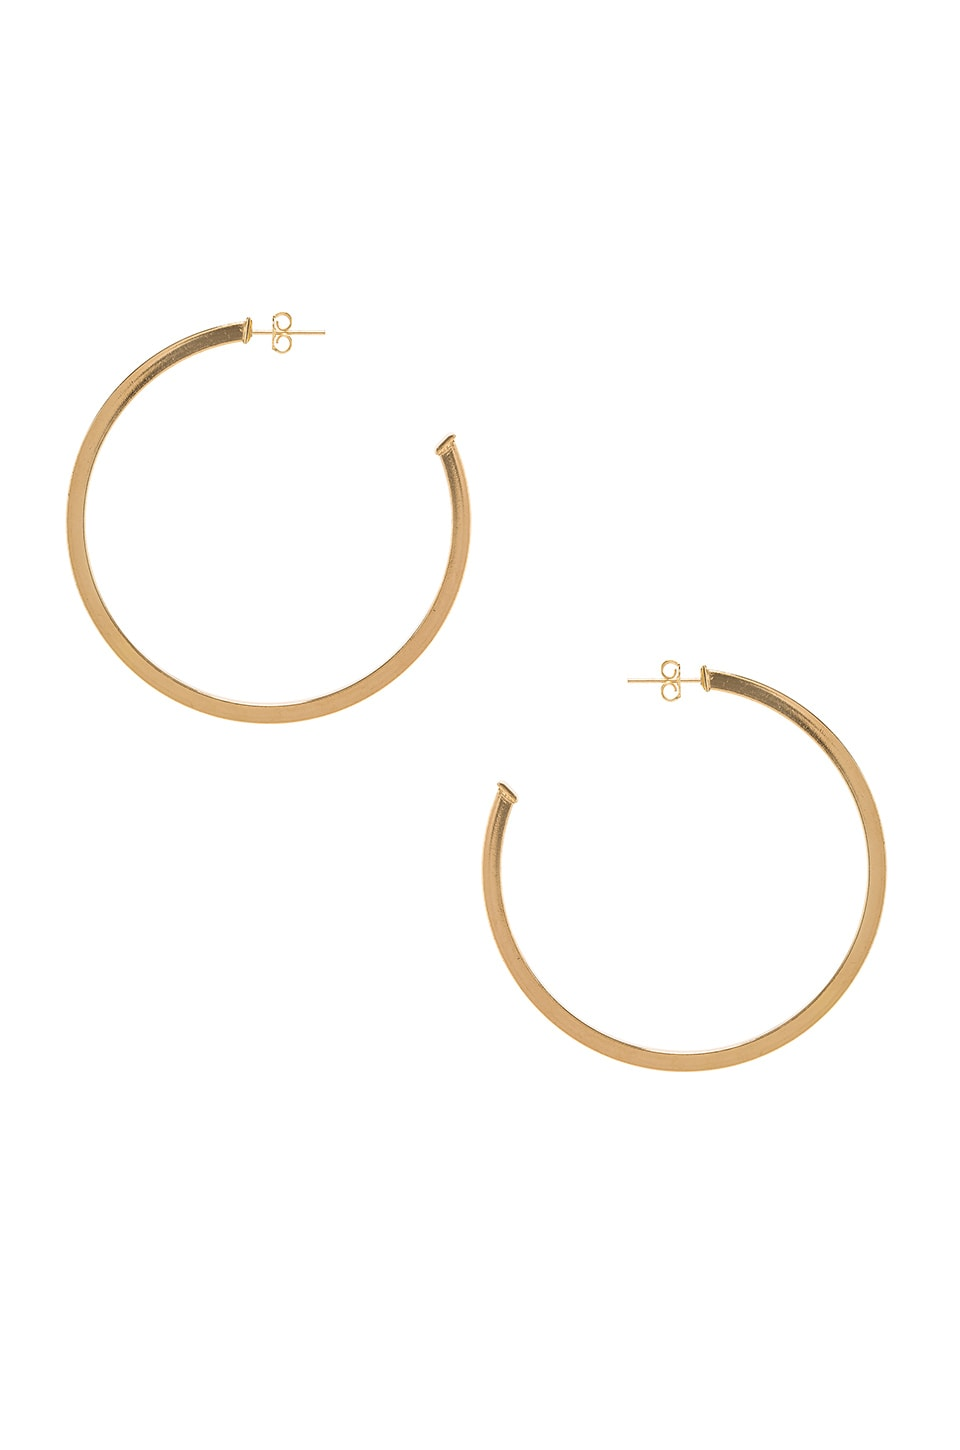 JOOLZ BY MARTHA CALVO Hailey Hoops in Metallic Gold